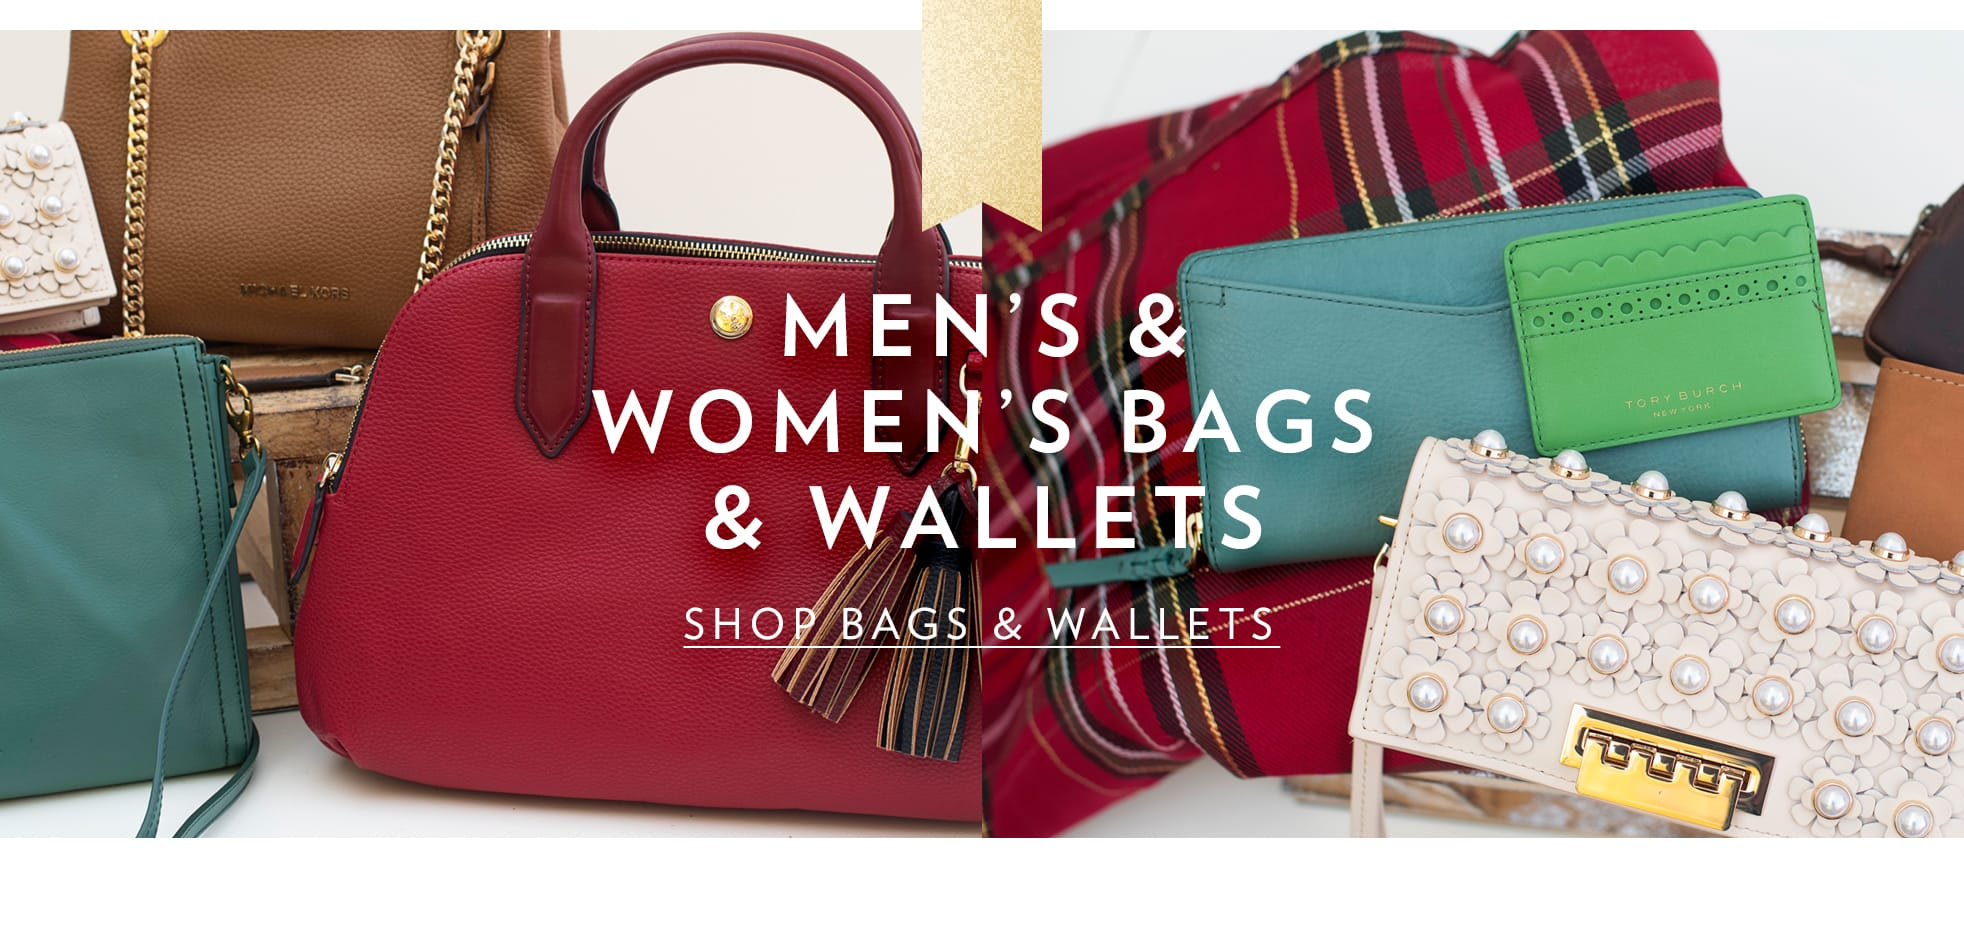 Shop Bags & Wallets